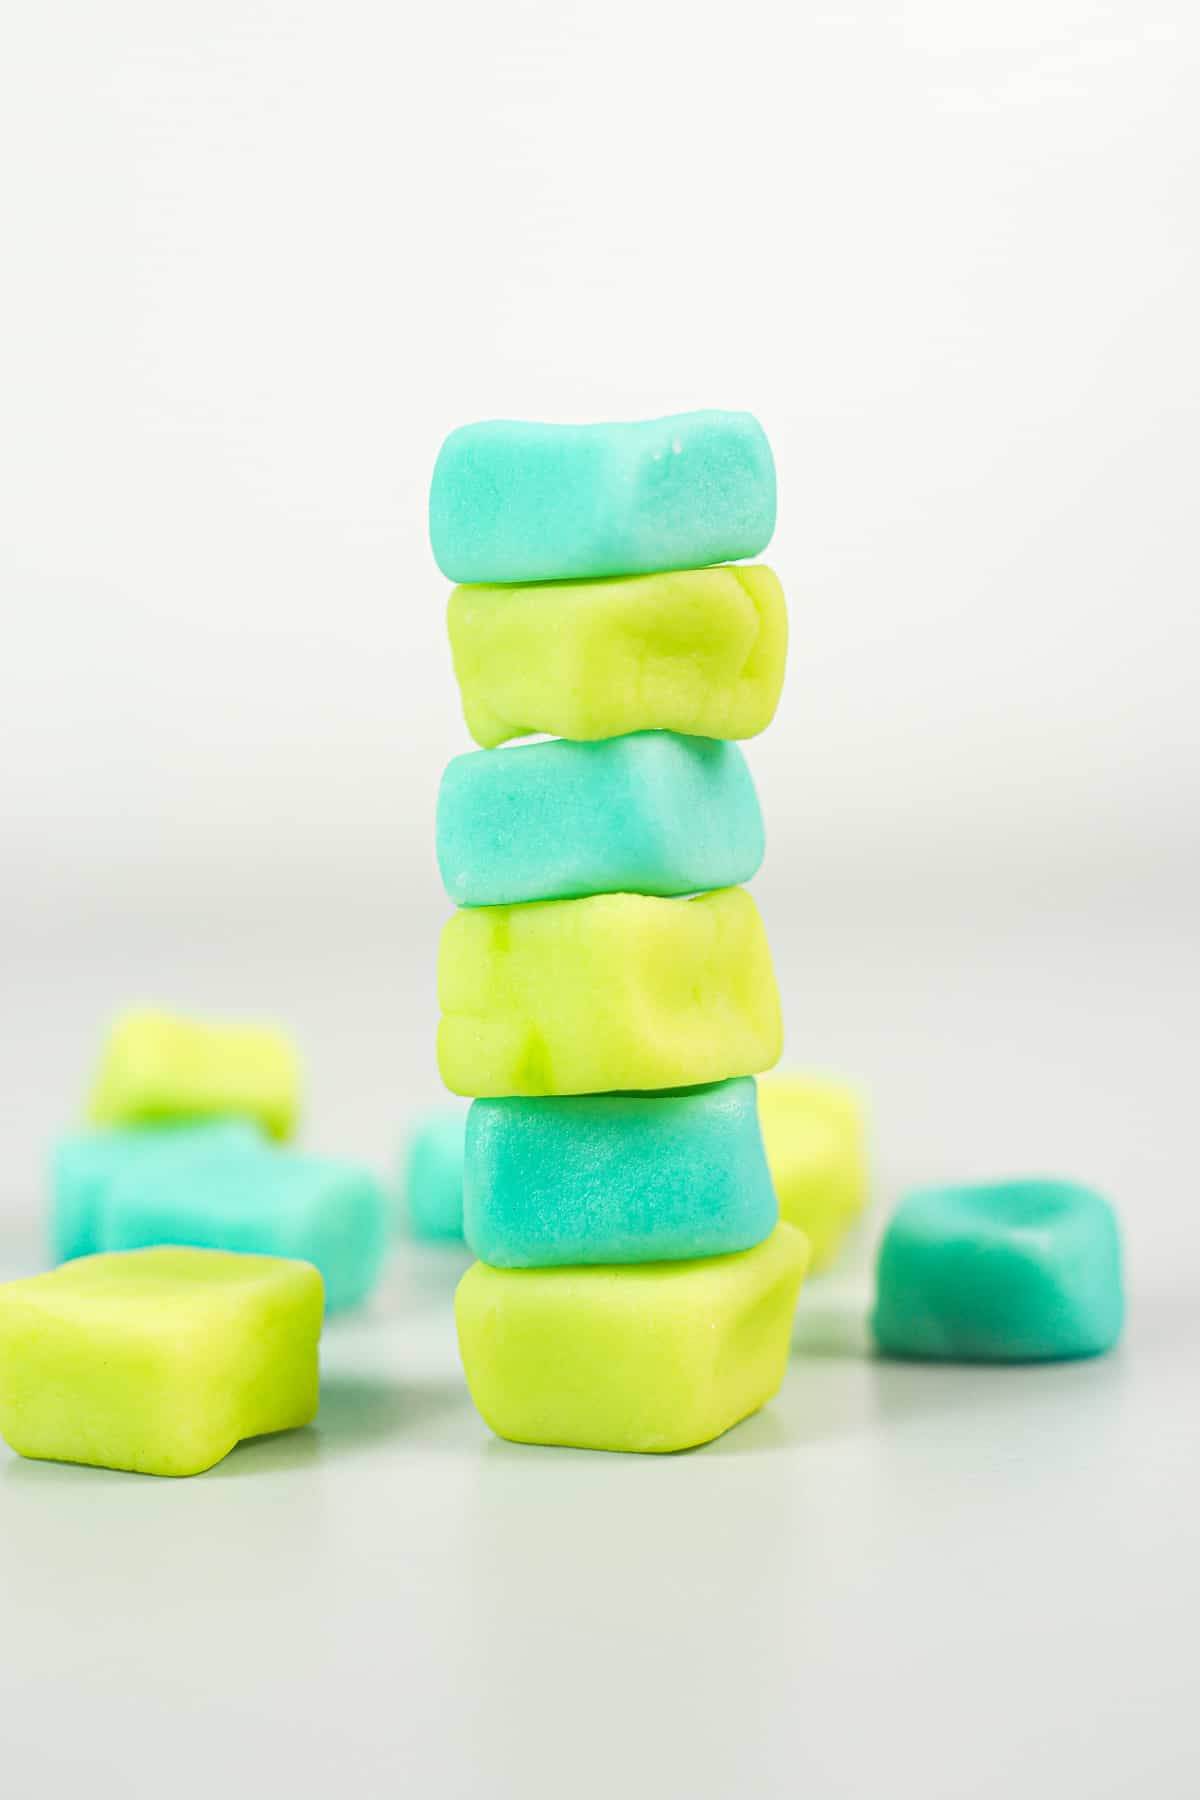 A stack of 6 blue and green cream cheese candy mints